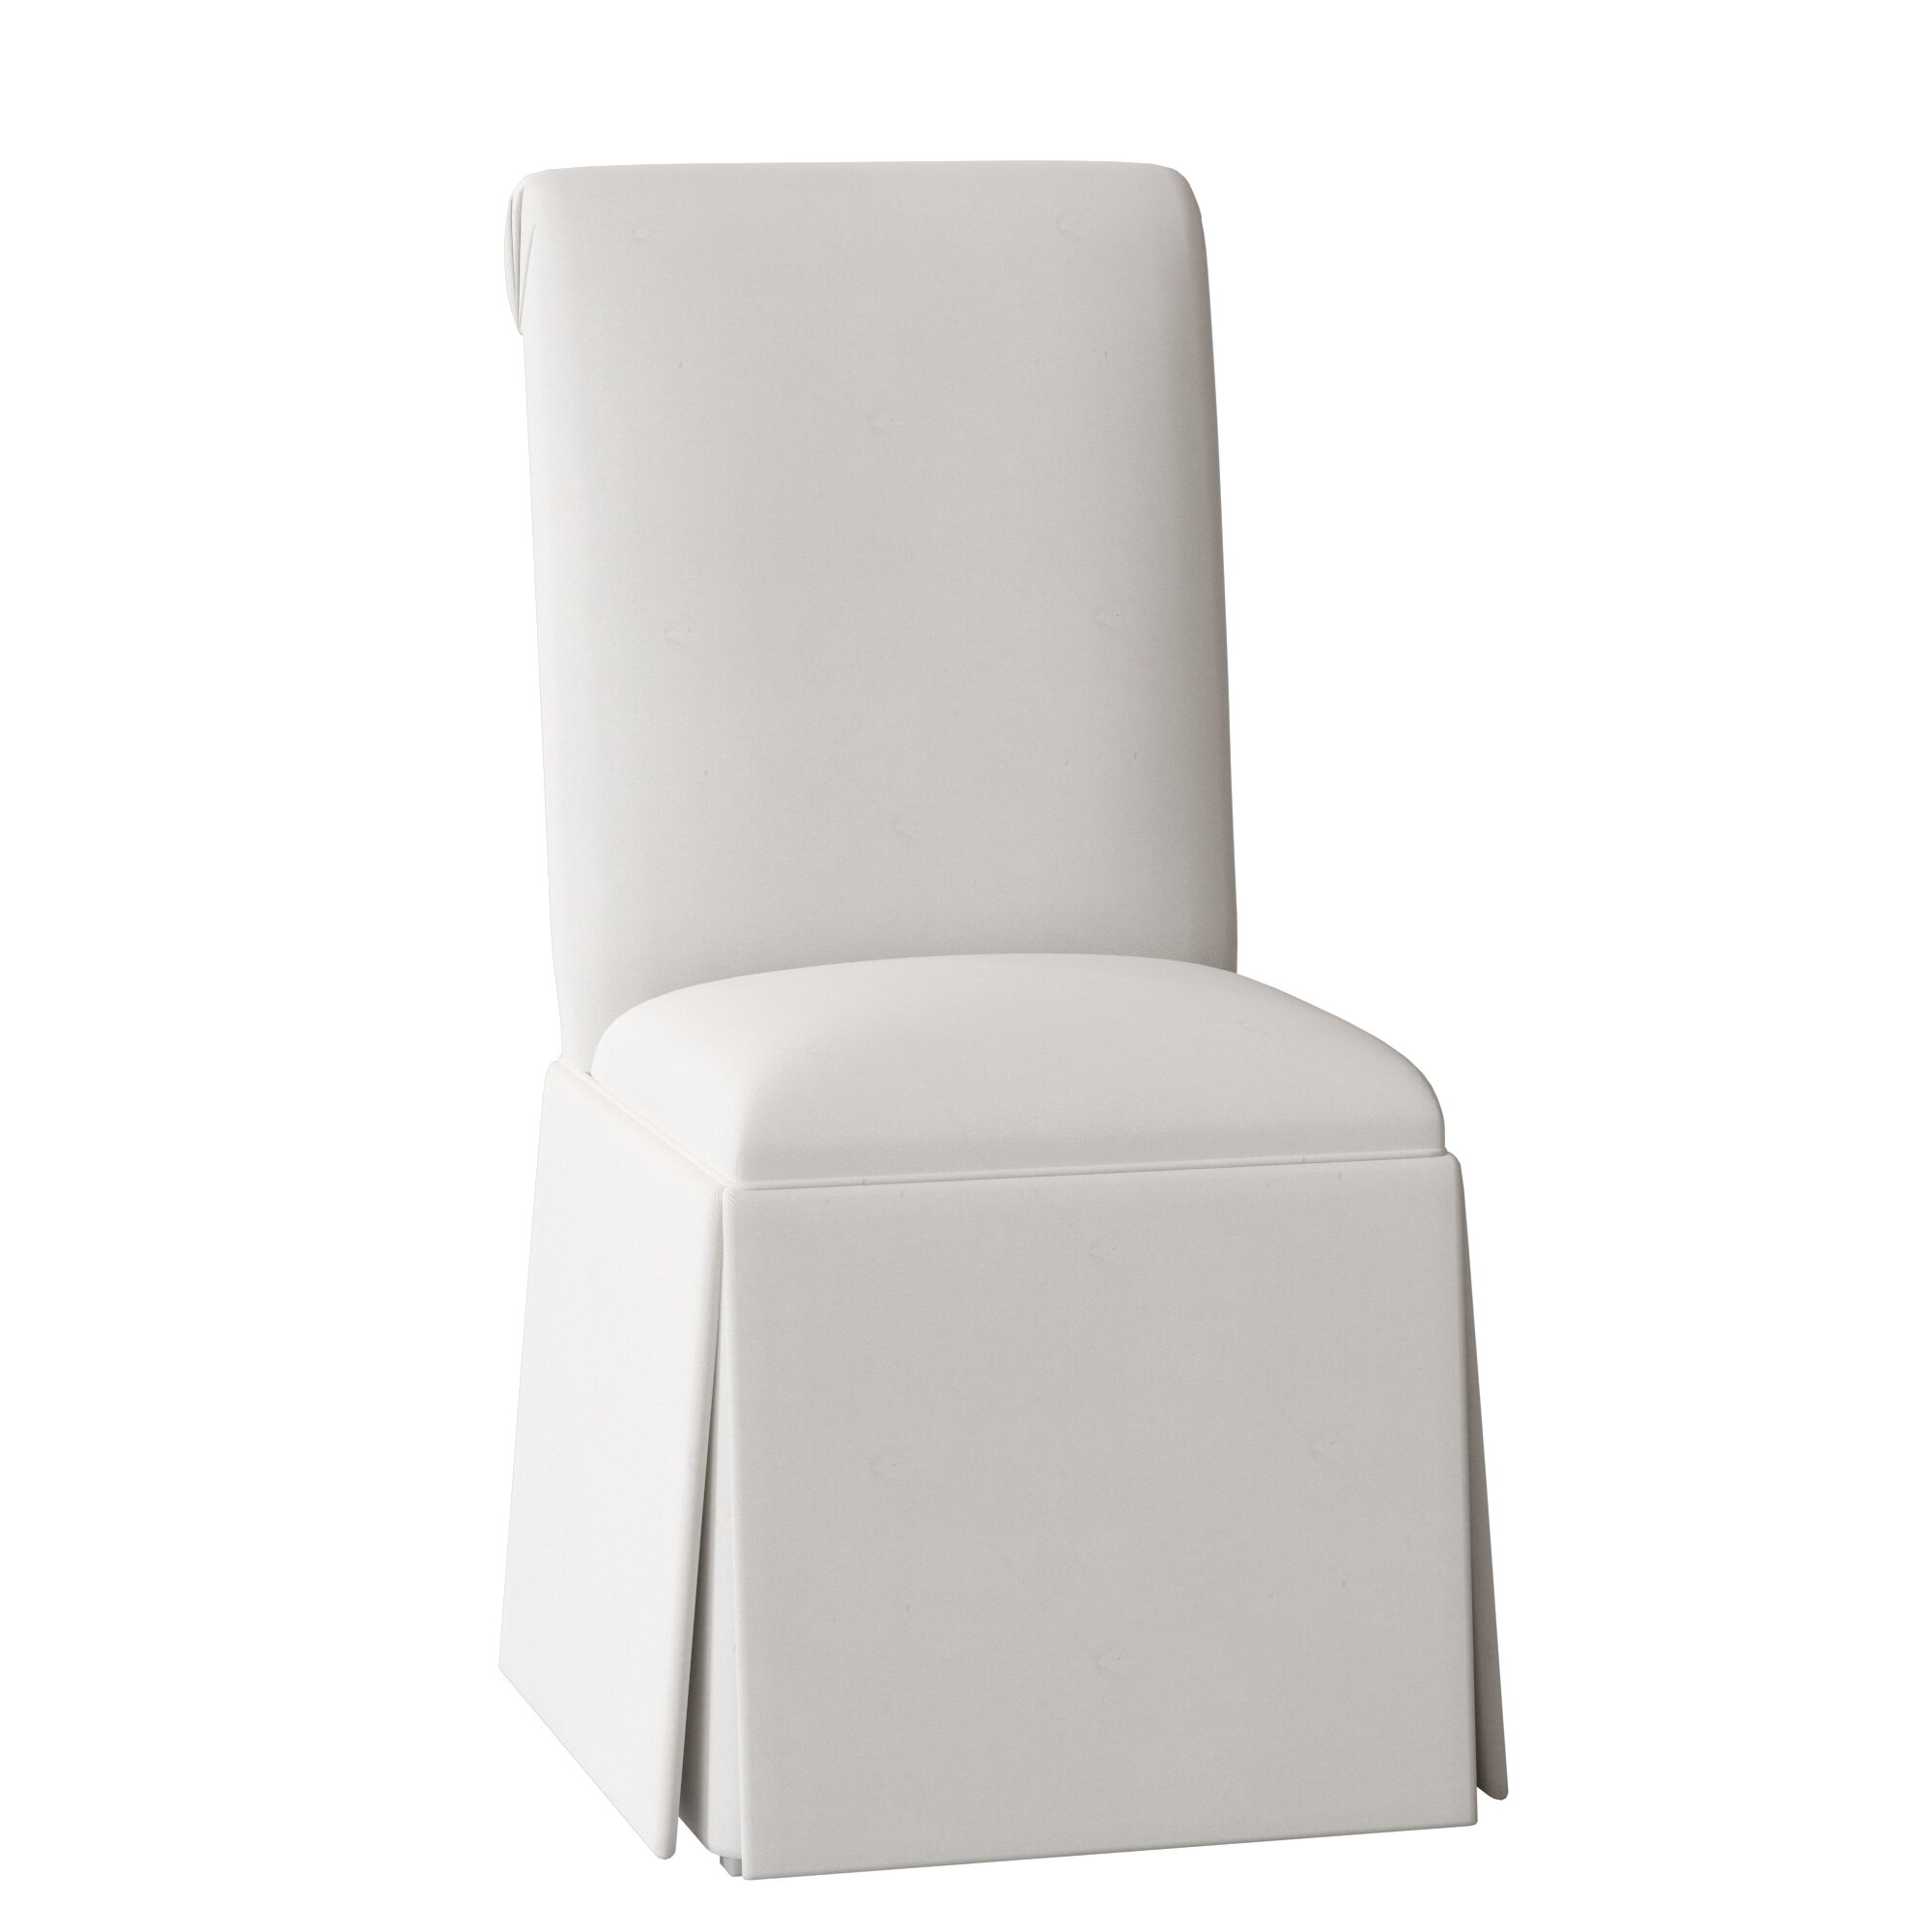 Super Weare Solid Back Skirted Upholstered Dining Chair Ibusinesslaw Wood Chair Design Ideas Ibusinesslaworg